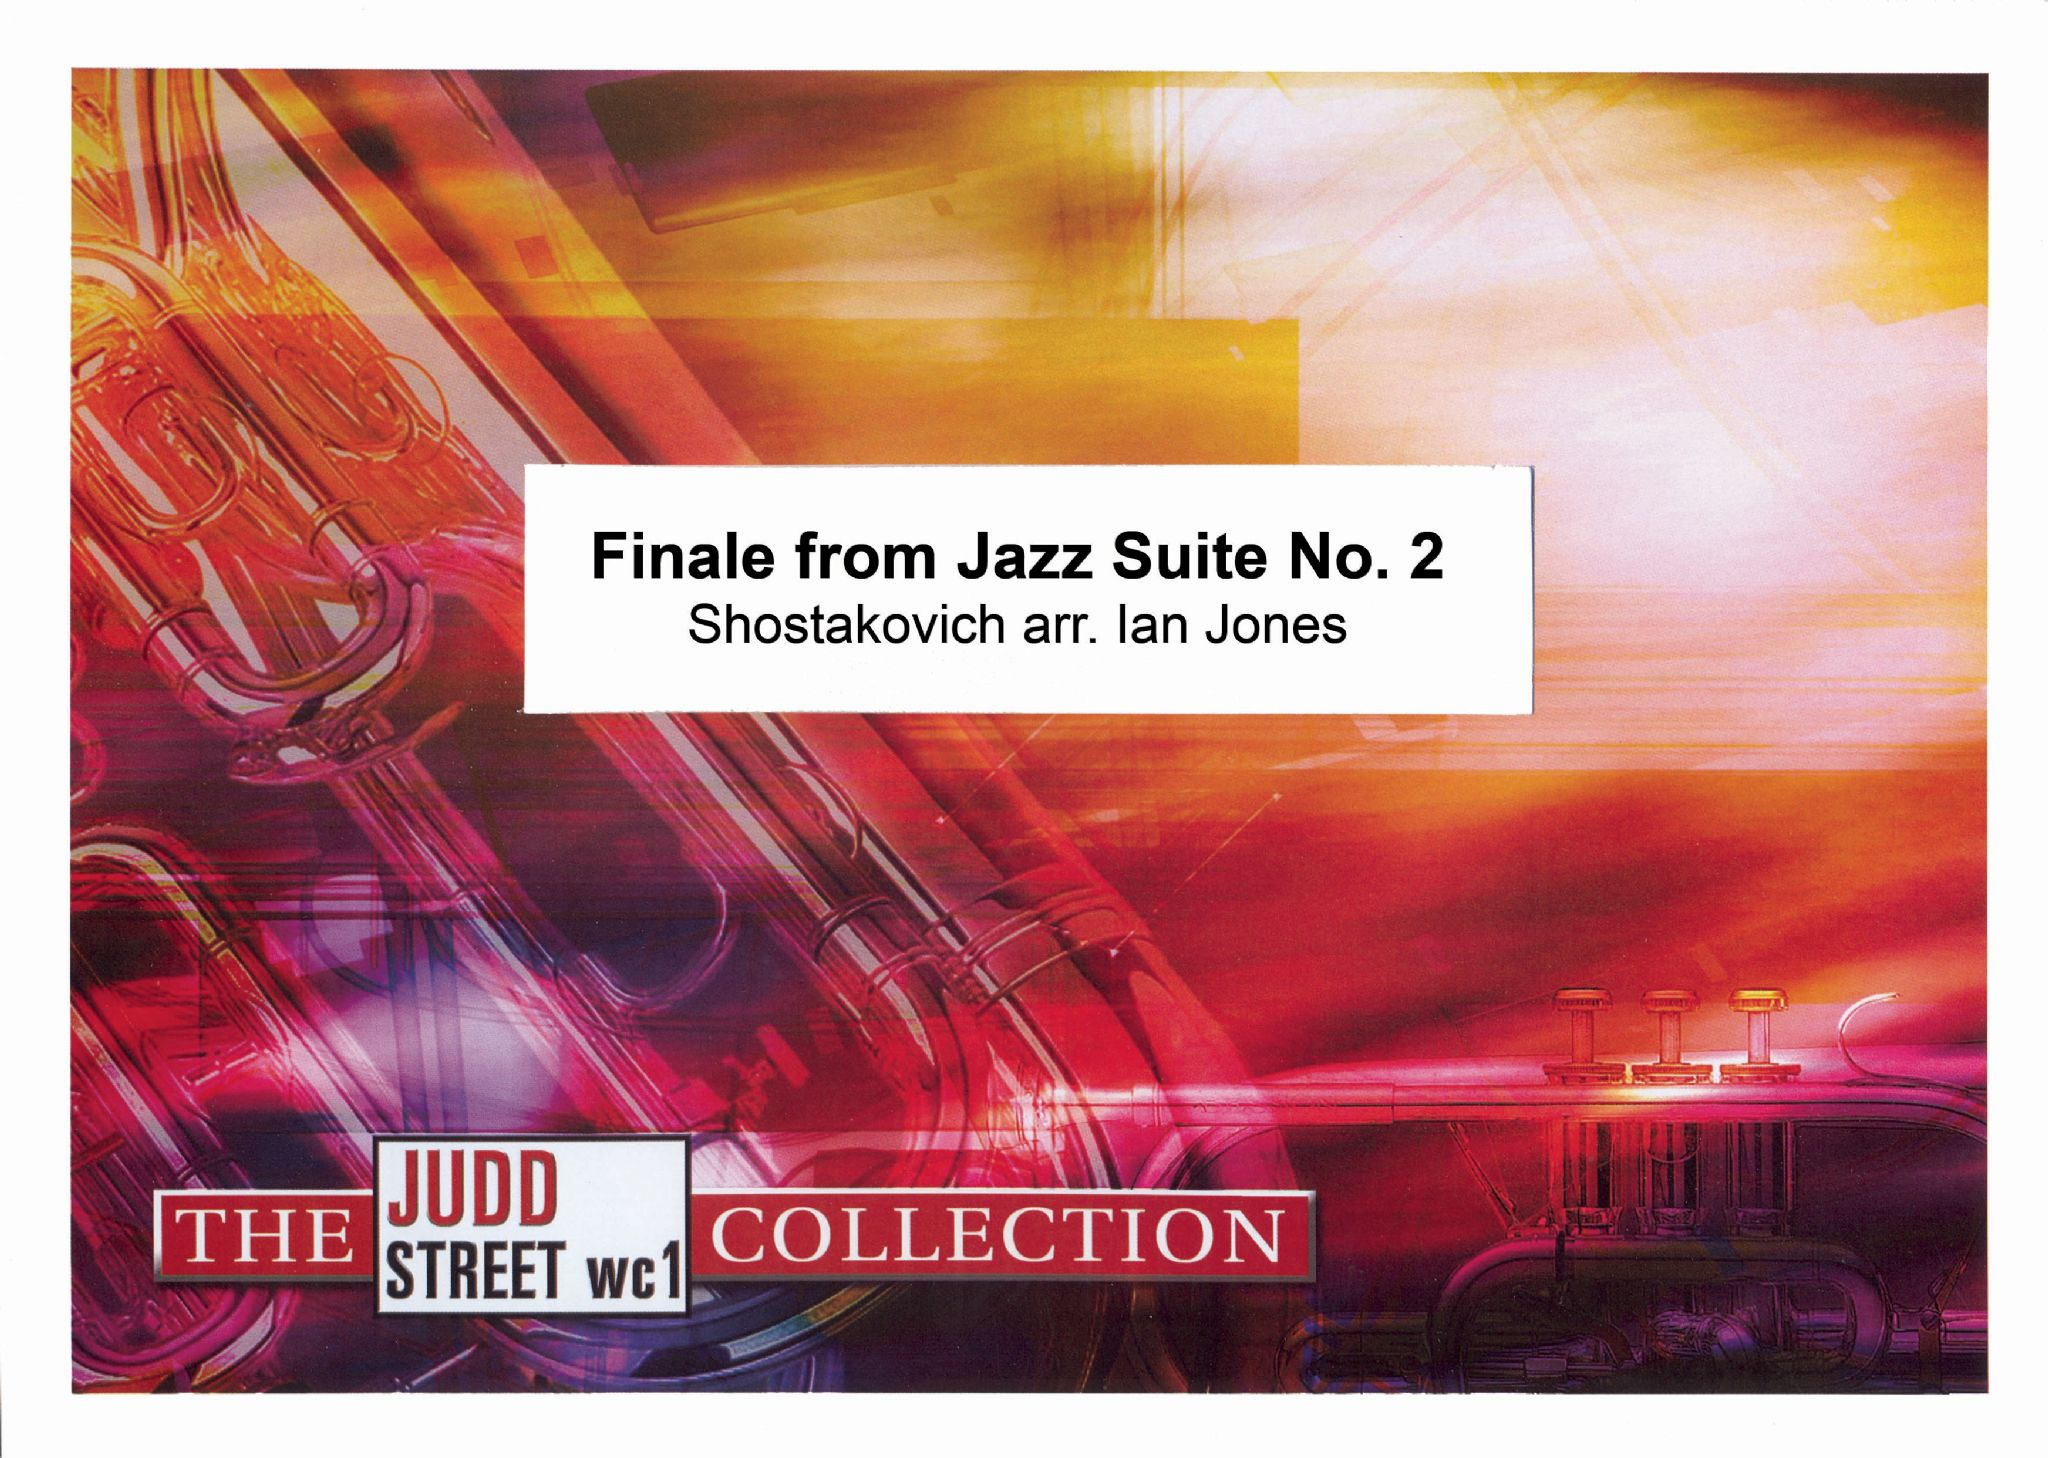 Judd: Finale from Jazz Suite No. 2